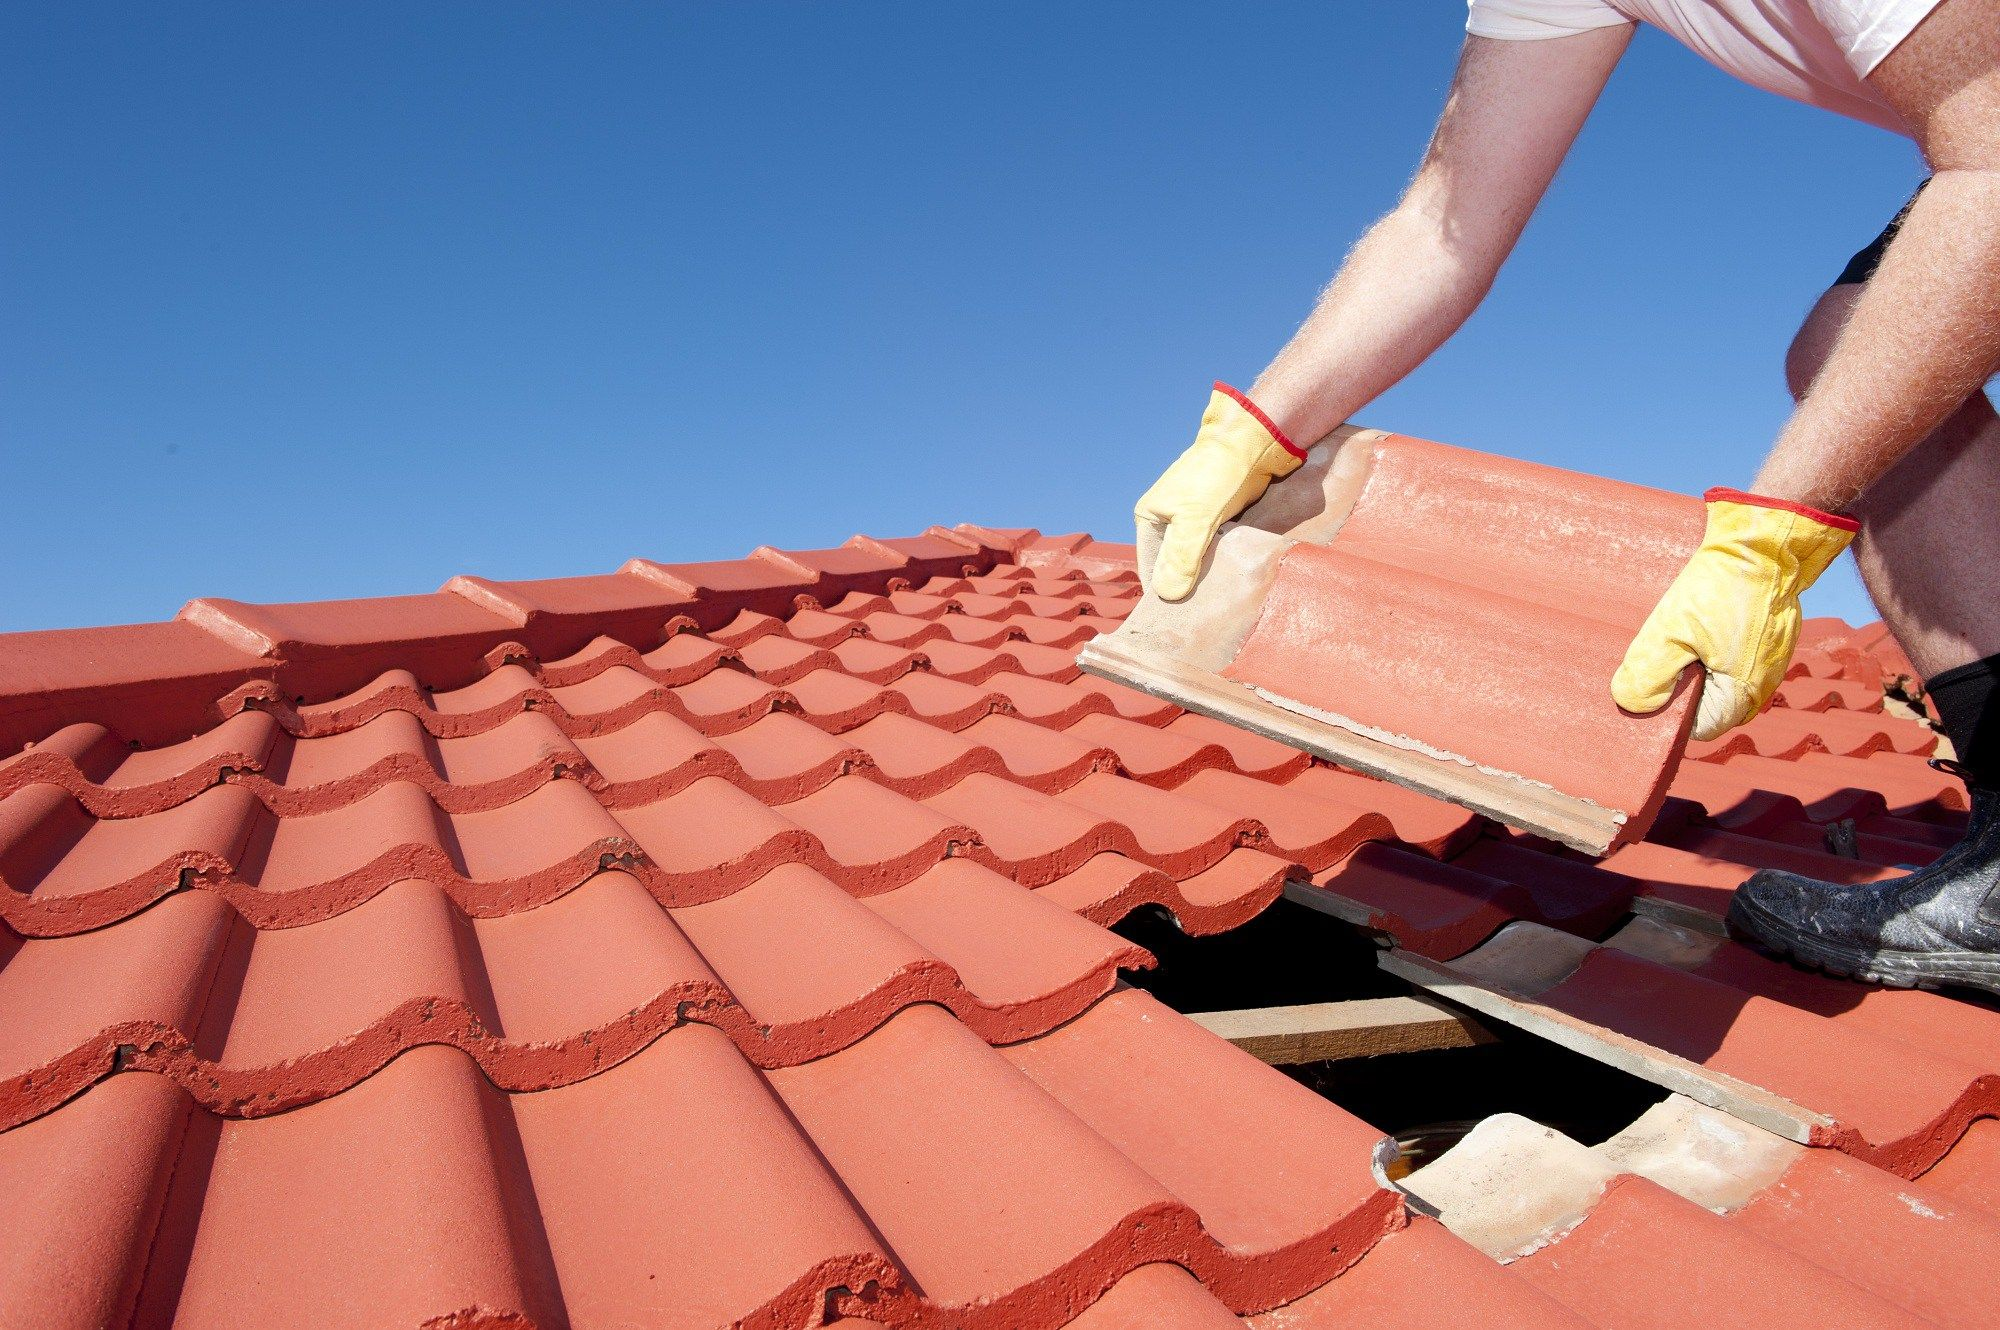 Shingles are often the most economical solution for yor